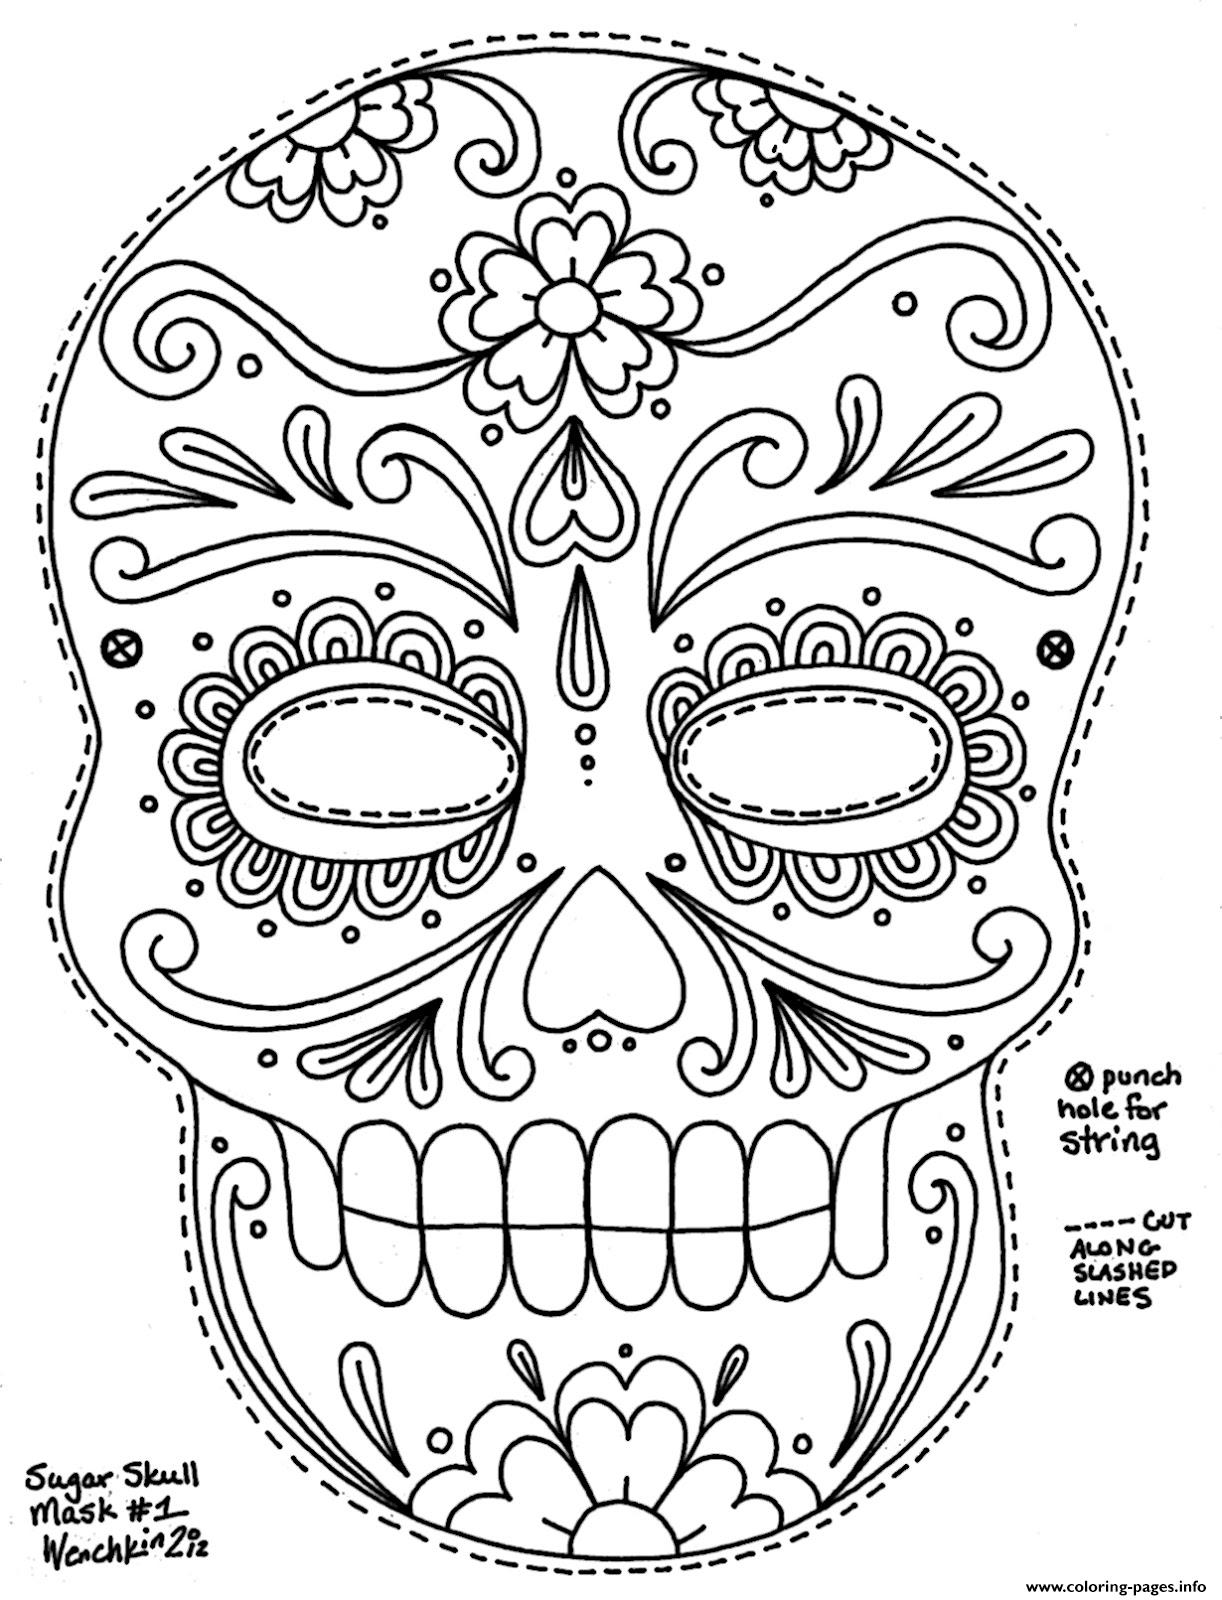 coloring pages for adults hd simple adult coloring pages at getcoloringscom free adults hd coloring pages for